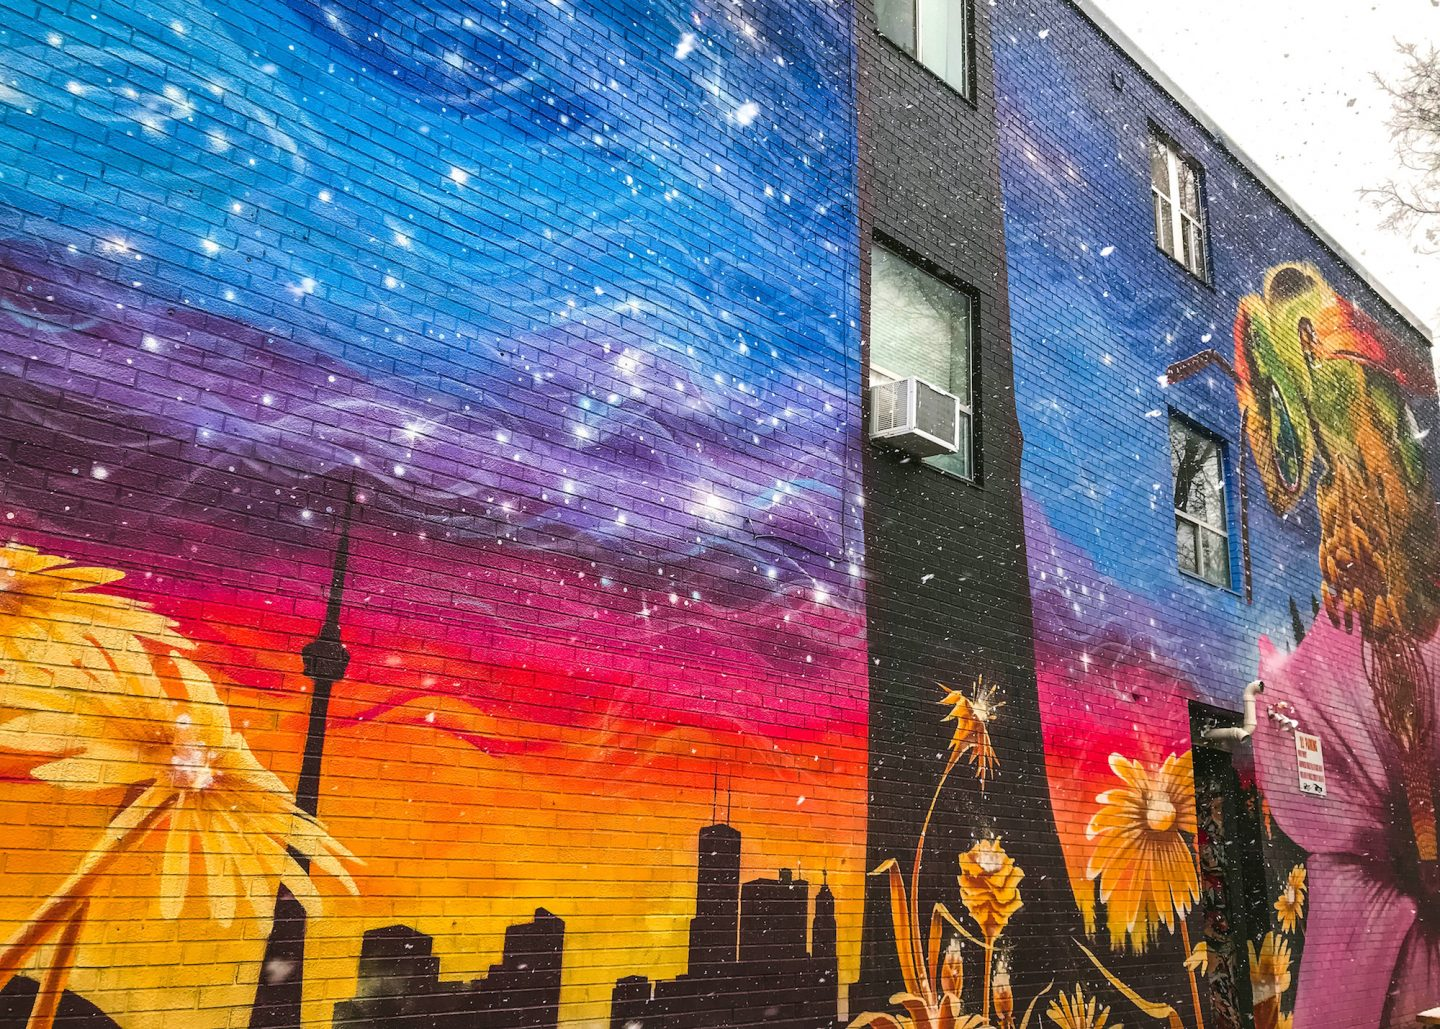 Toronto skyline mural in the Annex